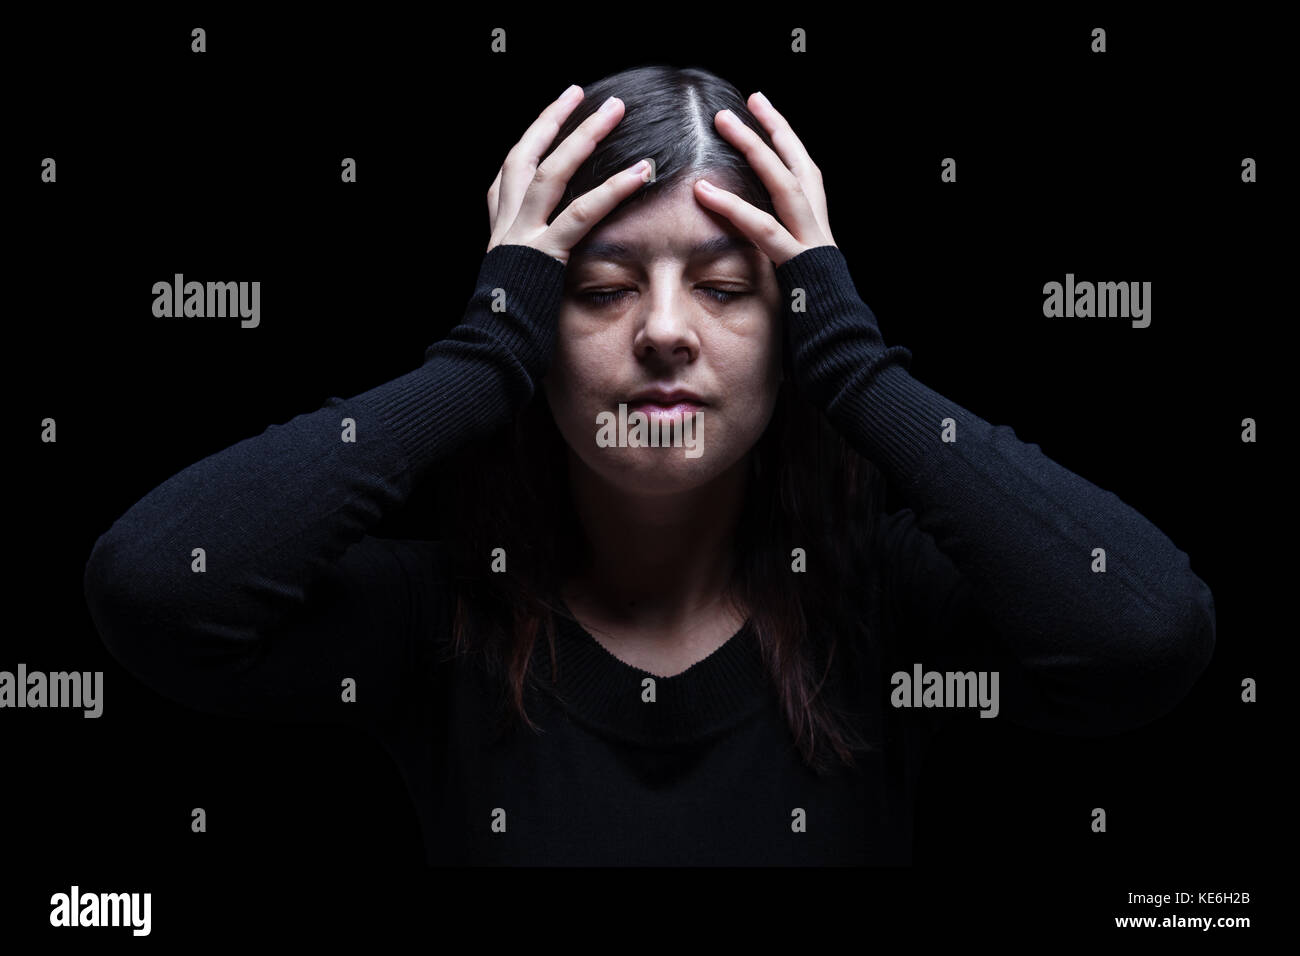 Distressed woman holding head with hands. Black background / Migraine headache pain depression depressed despair - Stock Image